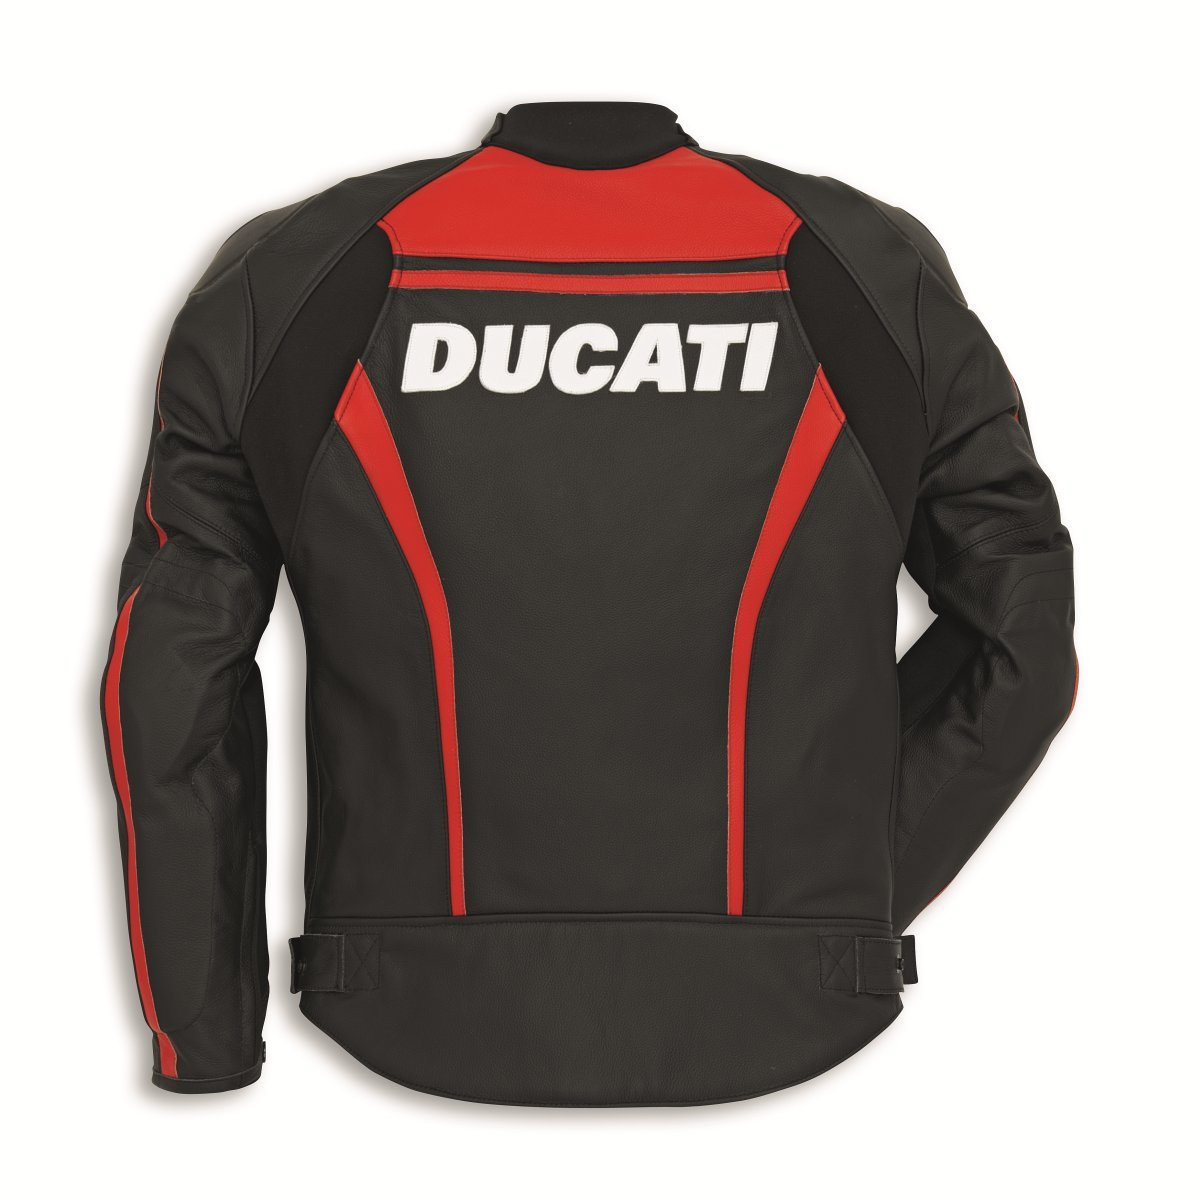 Amazon.com: Ducati Dainese Sport C2 Jacket Black Perf ...